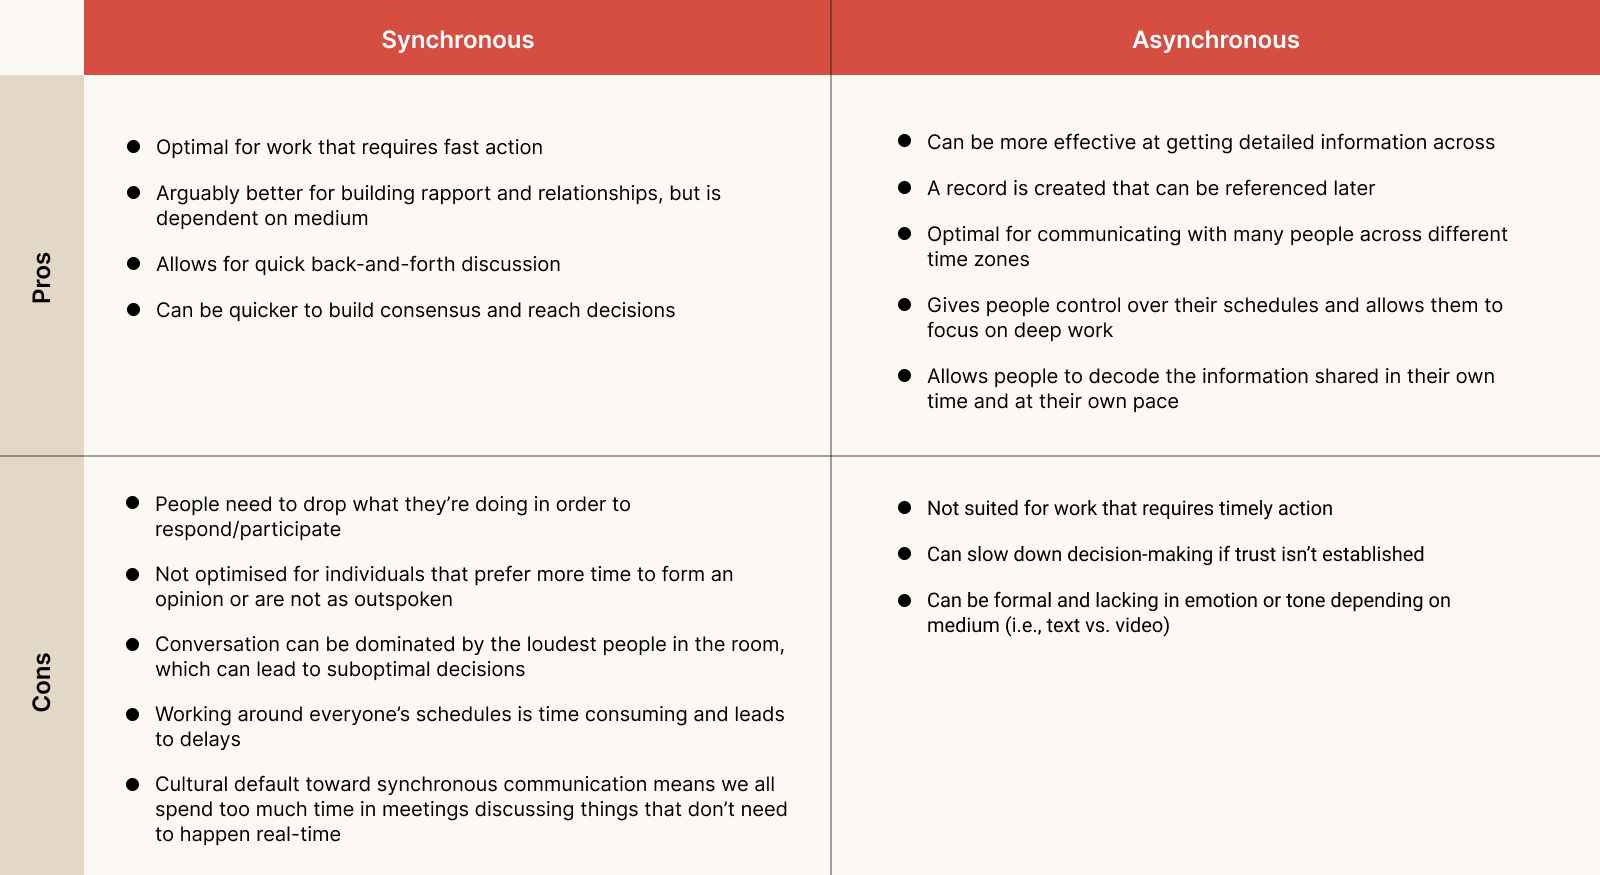 Comparison Chart: The Pros and Cons of Synchronous Vs. Asynchronous Communication